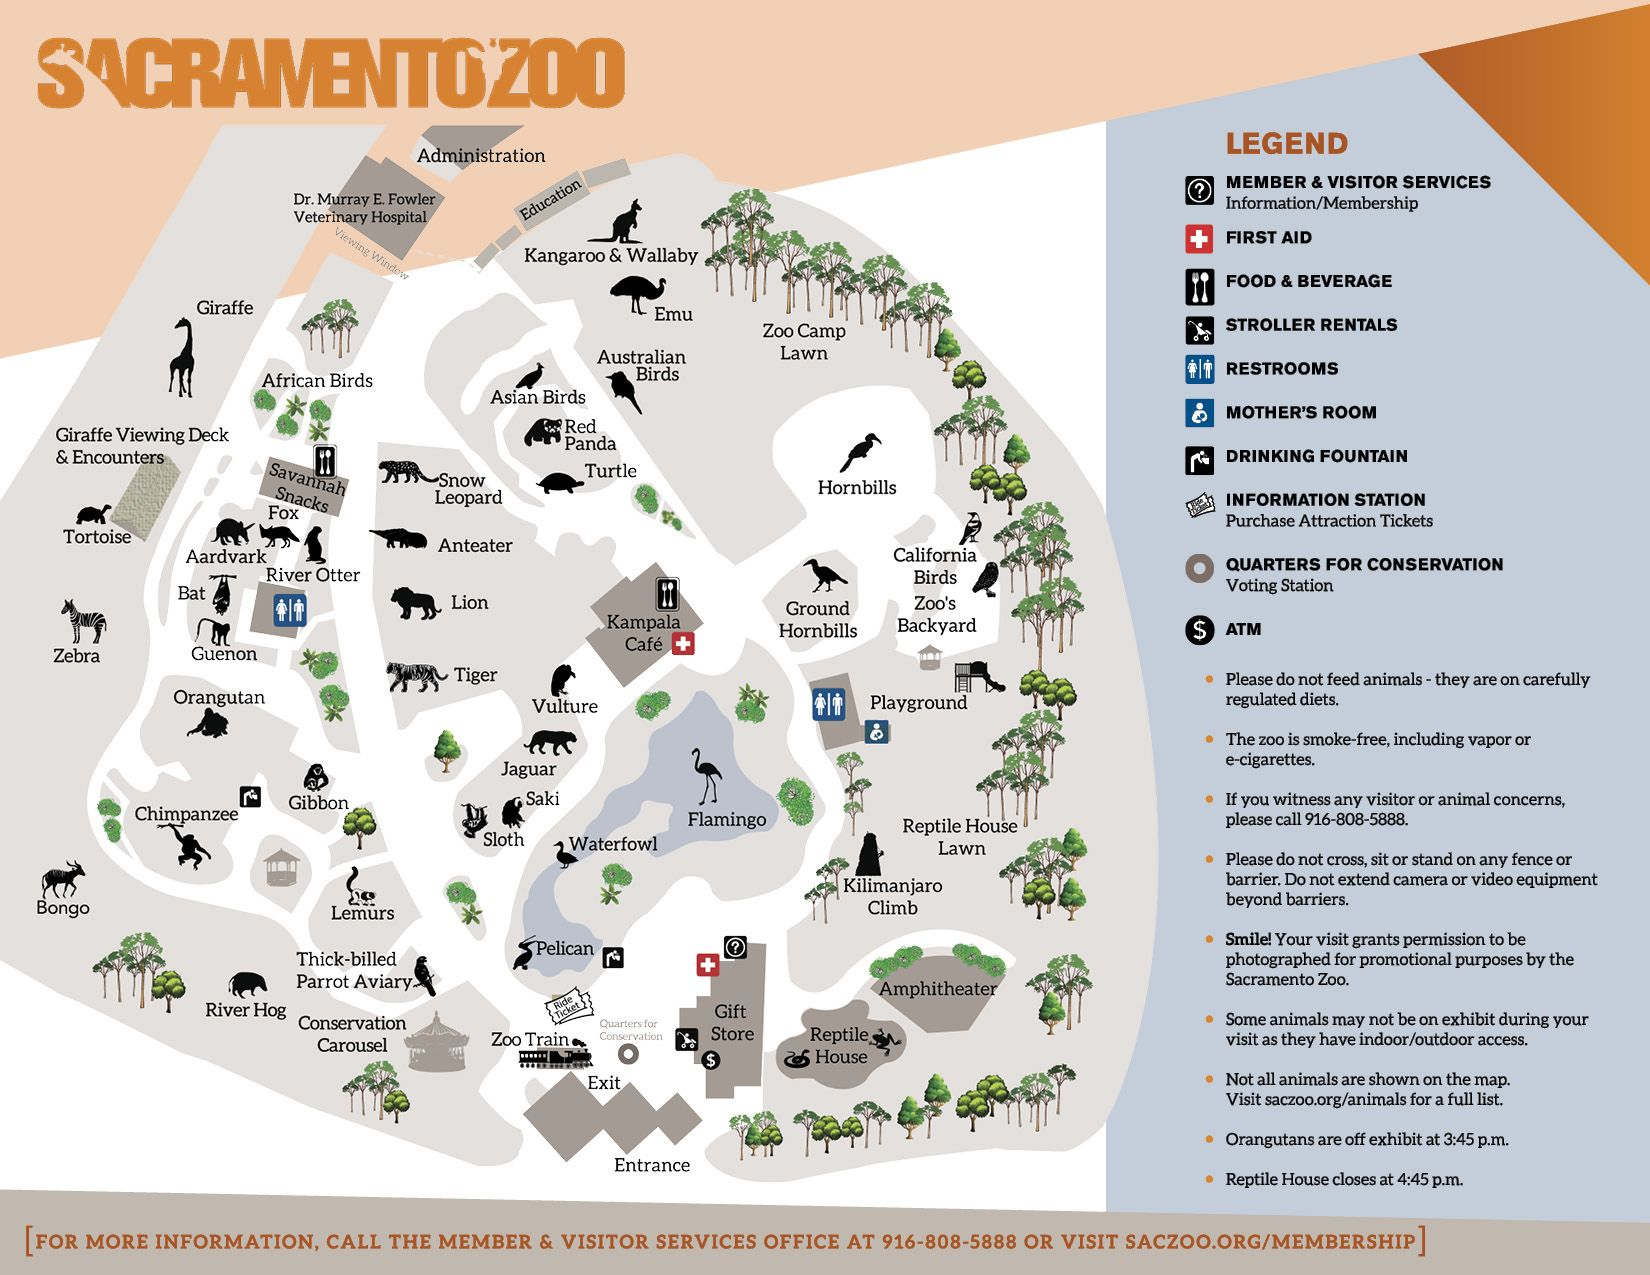 Plan Your Zoo Visit | Sacramento zoo, holiday ... Sacramento Zoo Map on nevada county fairgrounds map, american river bicycle trail map, city of detroit ward map, zoo miami map, sacramento international airport map, cincinnati zoo map, nashville zoo map, san diego zoo safari park map, downtown sacramento map, city of sacramento parking map, el dorado county fair map, port of sacramento map, zoo atlanta map, jacksonville zoo and gardens map, oklahoma city zoo map, grant's farm map, monterey bay aquarium map, point defiance zoo & aquarium map, virginia zoological park map, indiana state museum map,